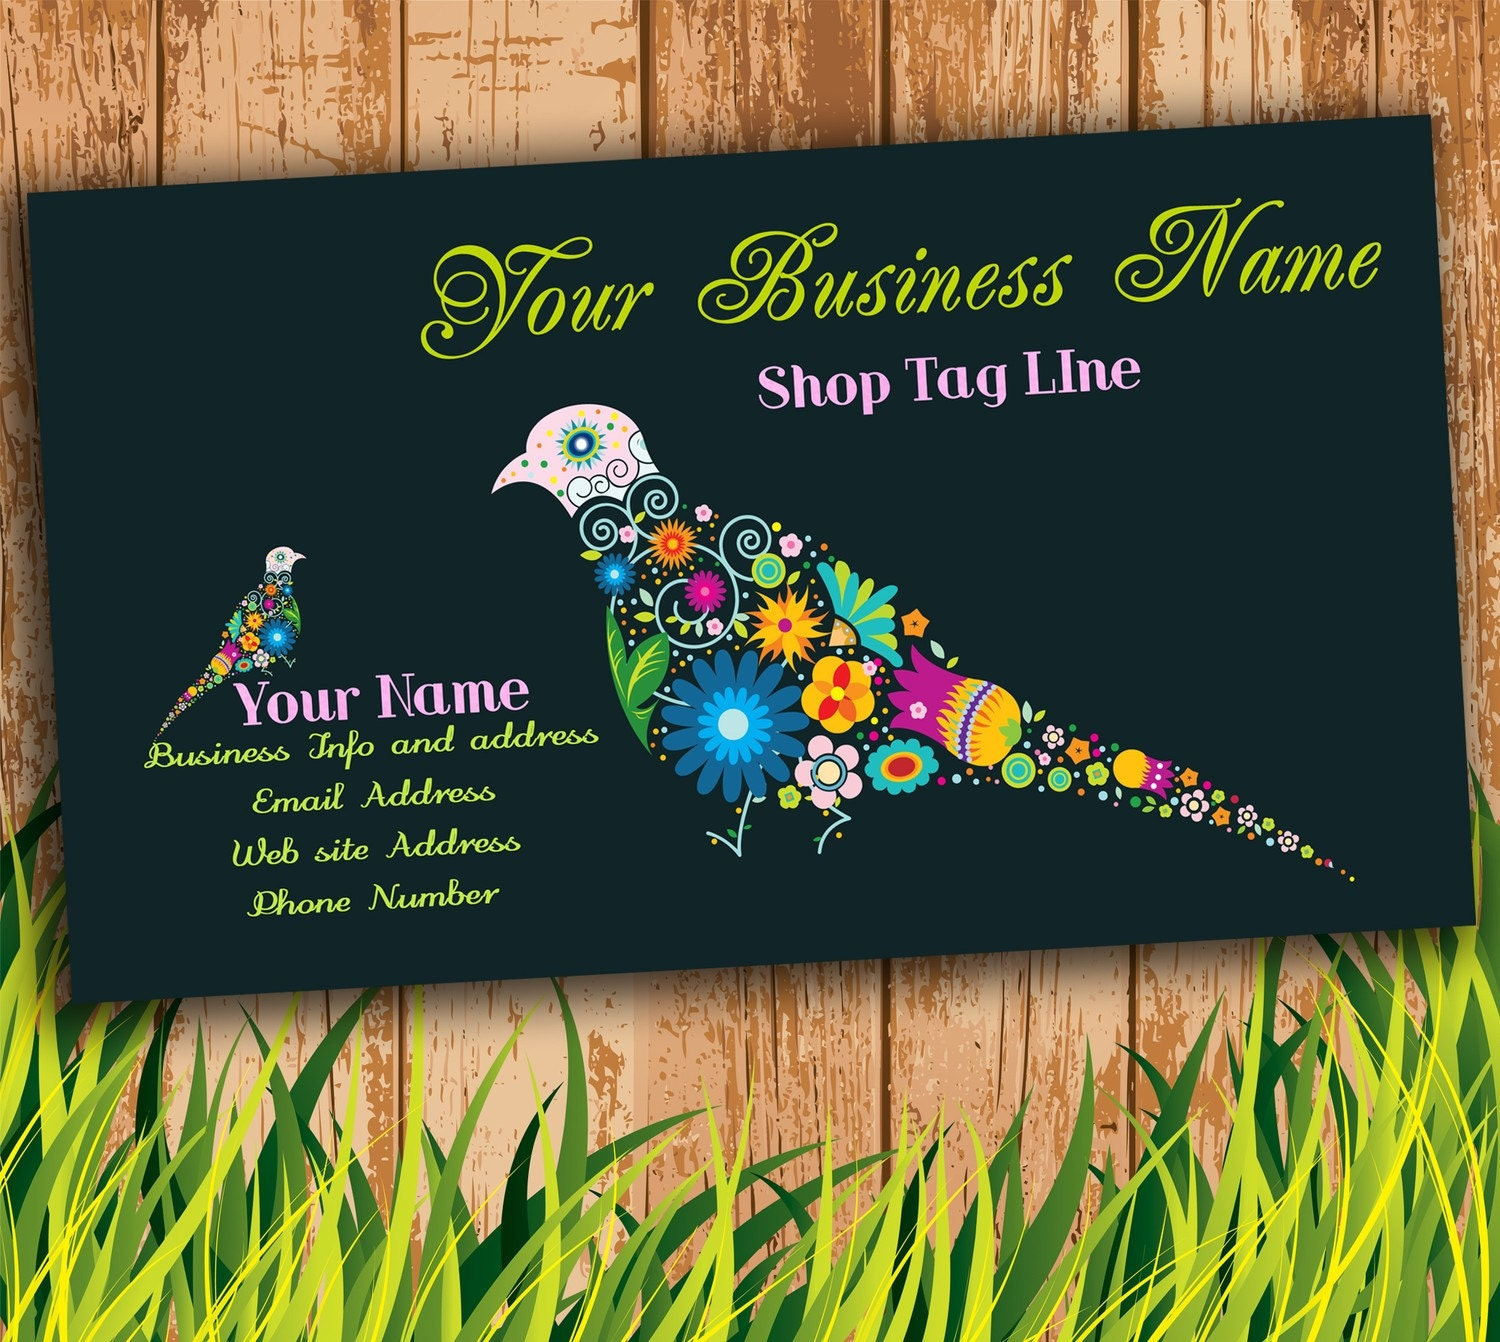 Nikki makes scents sometimes funky business cards with these funky business cards by biz cart anyone would love these colorful cards for a business or just calling cards very unique designs that will colourmoves